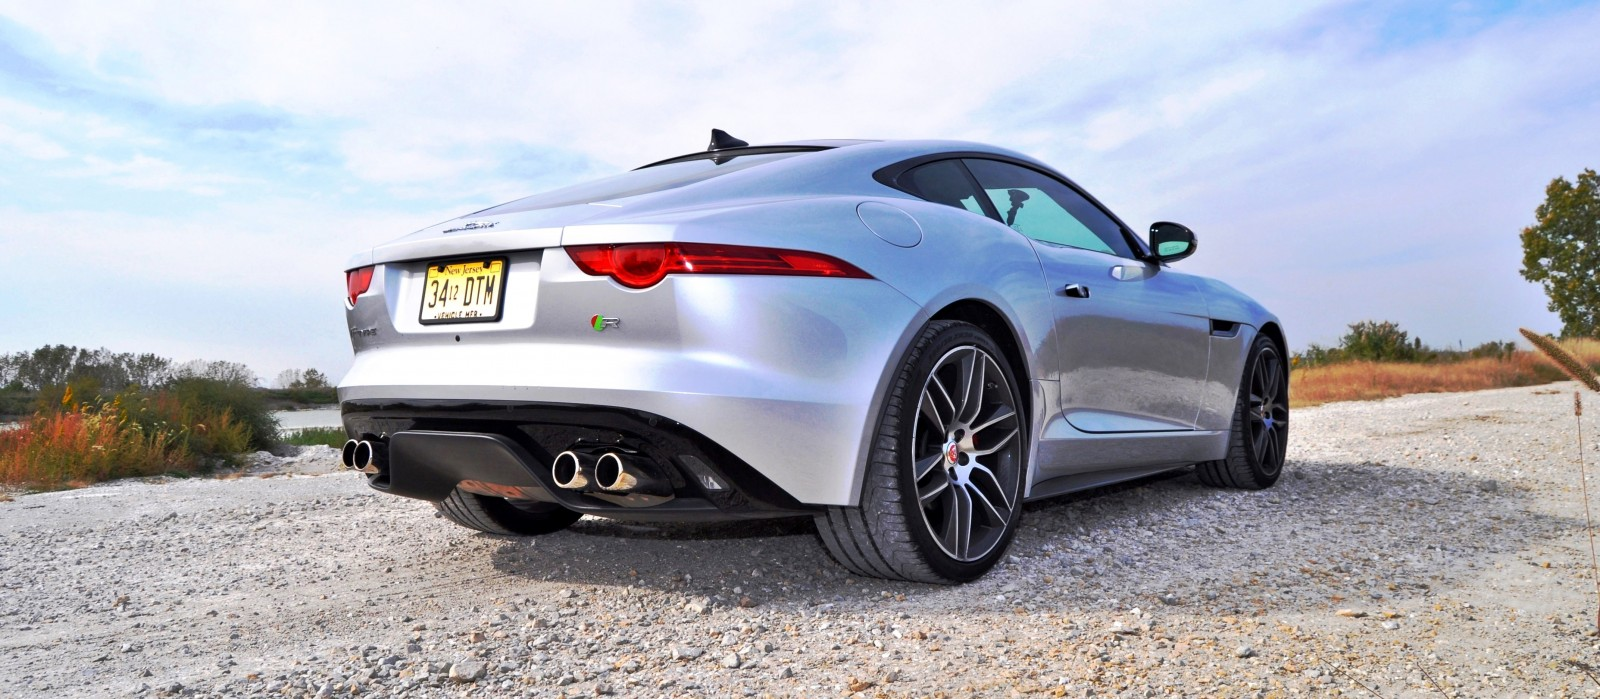 2015 JAGUAR F-Type R Coupe5